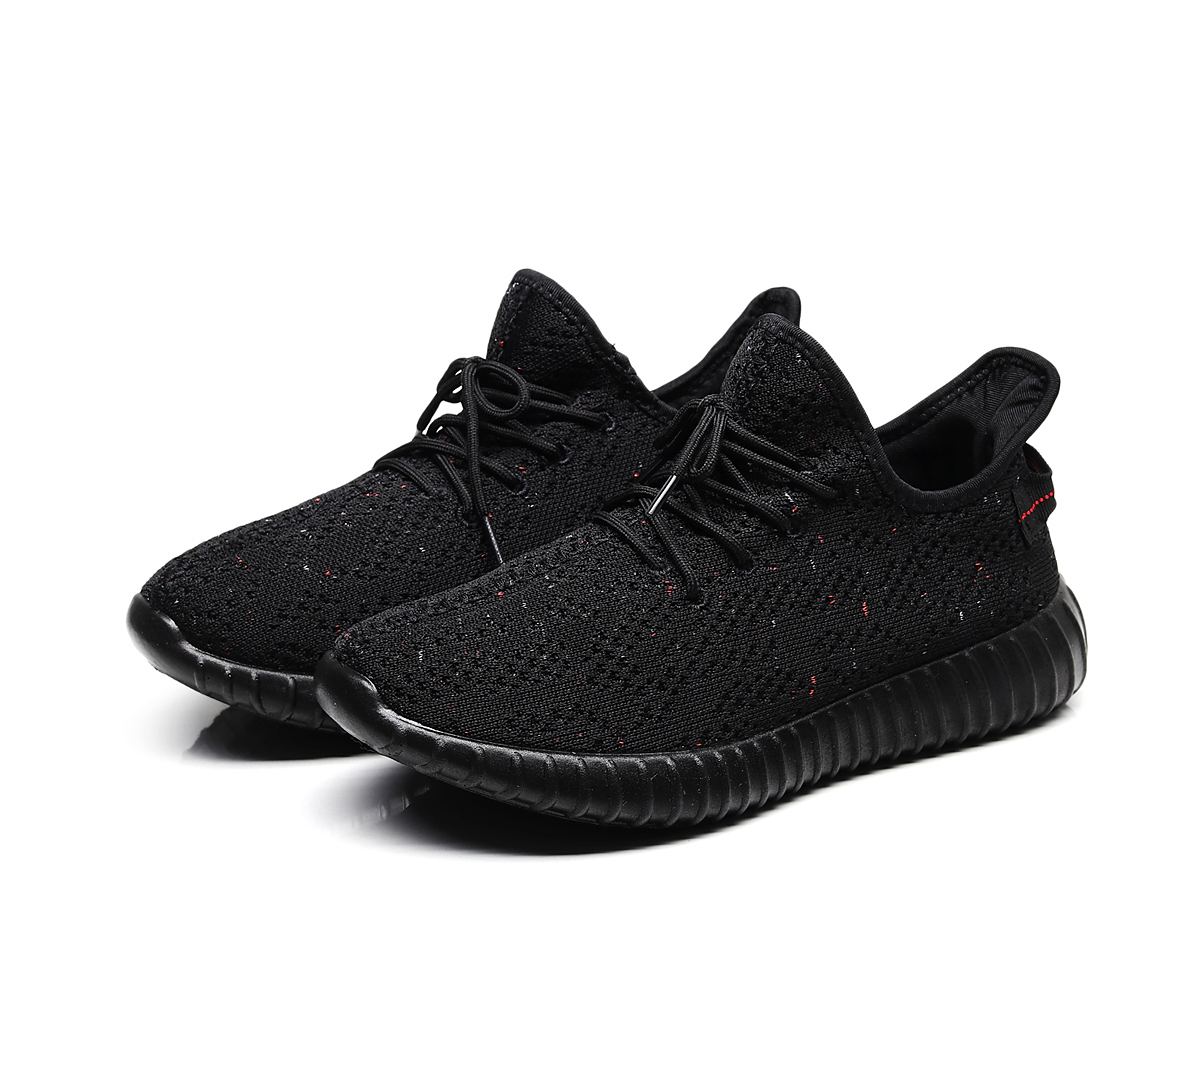 New Vente Hommes Sneakers Espadrilles Couples Chaussures Unisexe OnP8wk0X